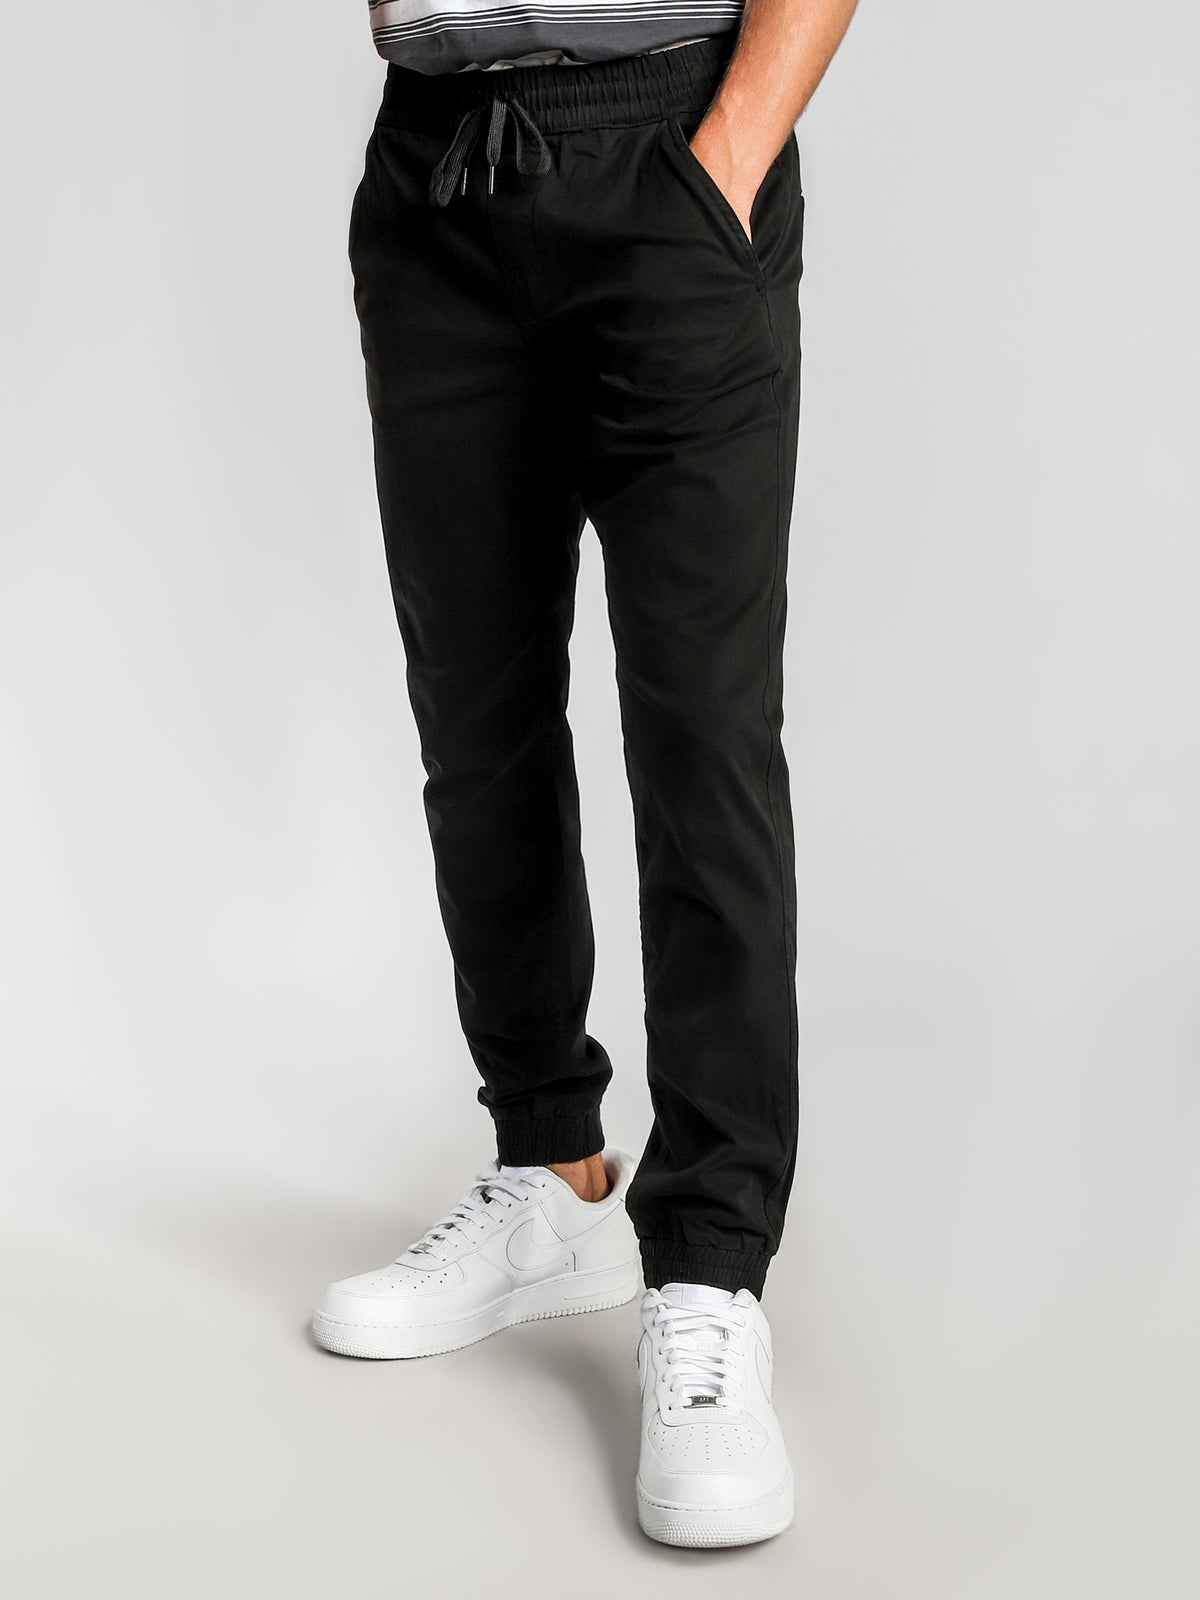 Indie Tapered Joggers in Black